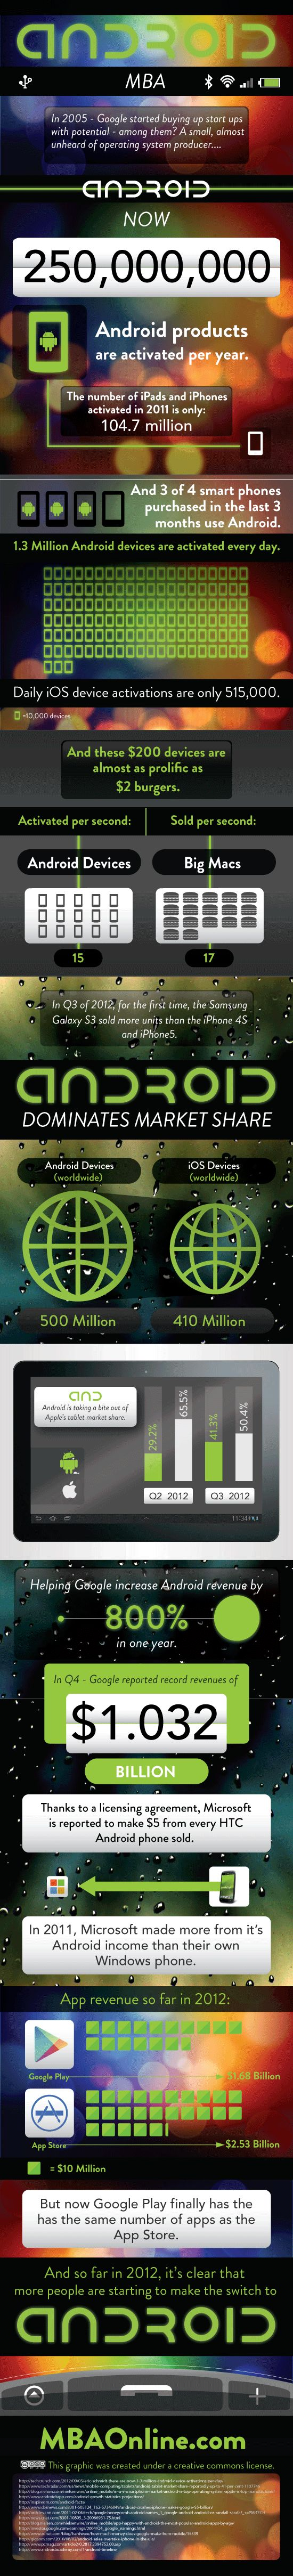 Very cool infographic about the rise of Android devices